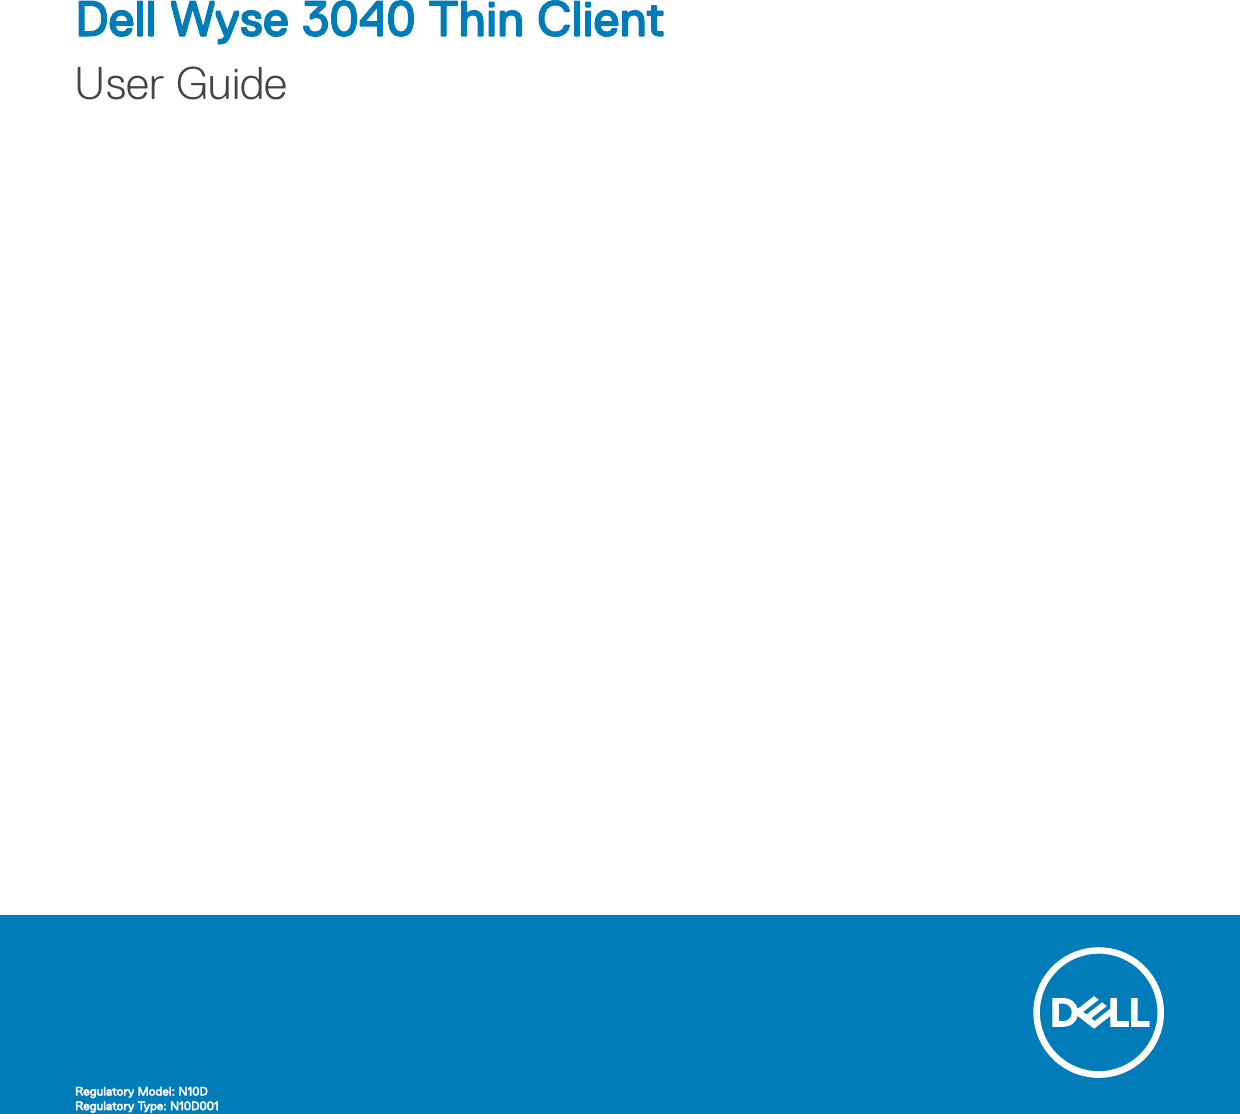 Dell Wyse 3040 thin client User Guide Manual Users En us